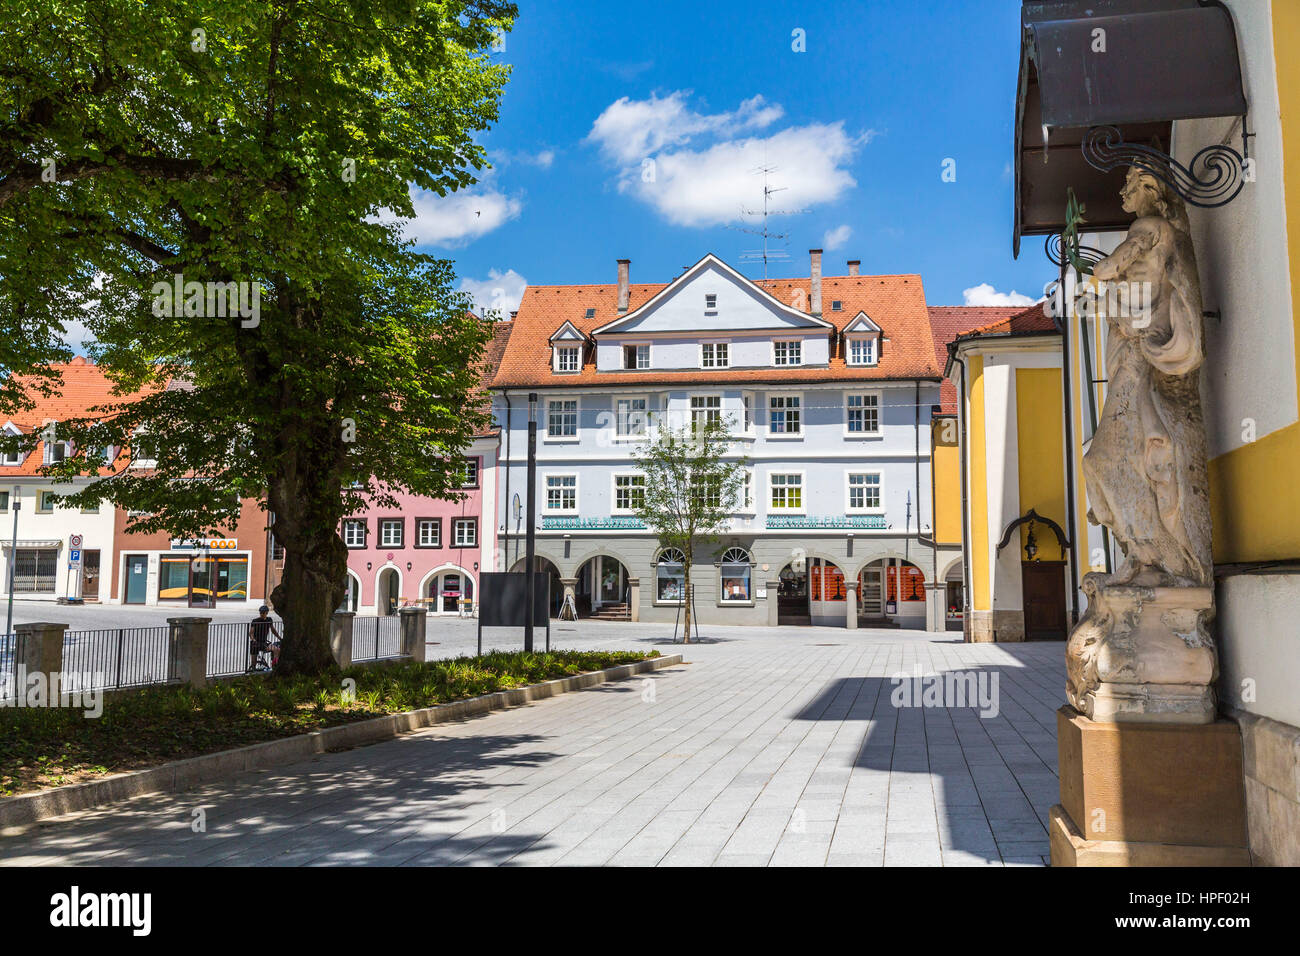 donaueschingen stockfotos donaueschingen bilder alamy. Black Bedroom Furniture Sets. Home Design Ideas